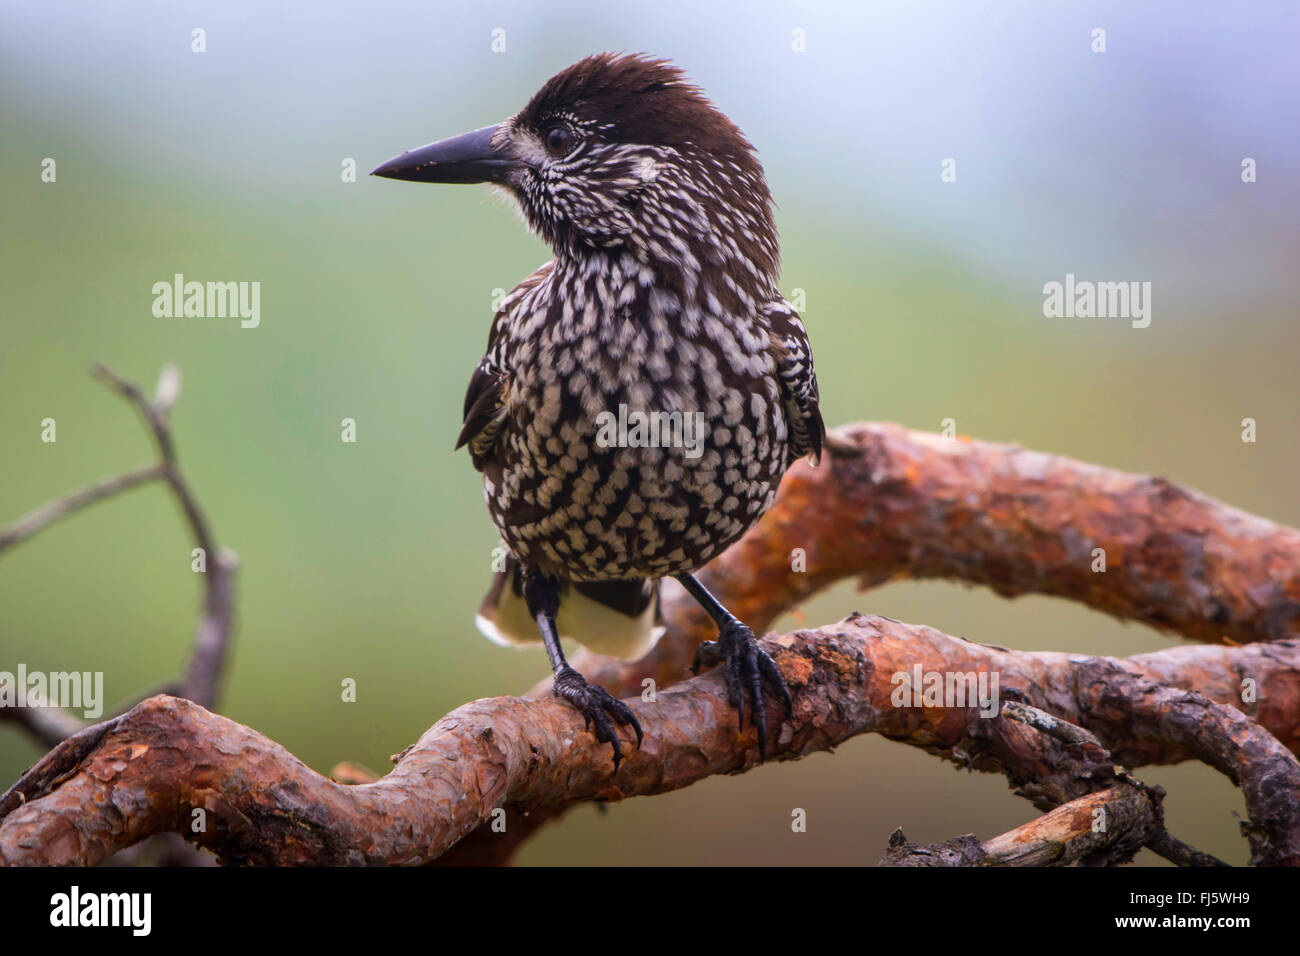 spotted nutcracker (Nucifraga caryocatactes), sits on a branch in forest, Norway, Trondheim - Stock Image